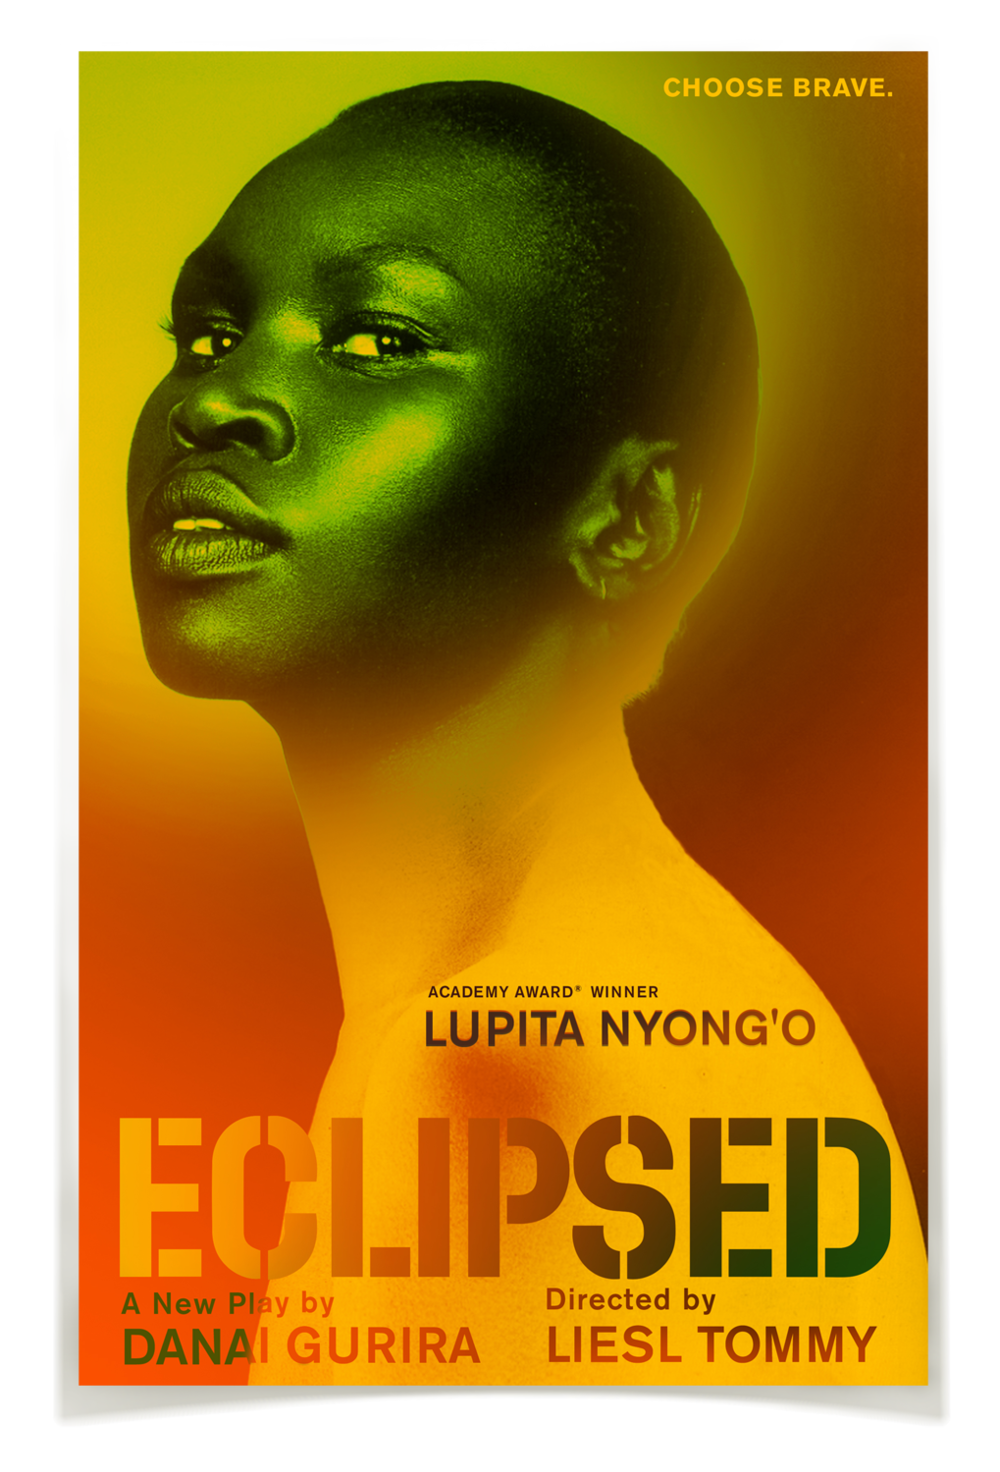 covell_design_eclipsed_lupita_nyong'o_4.png